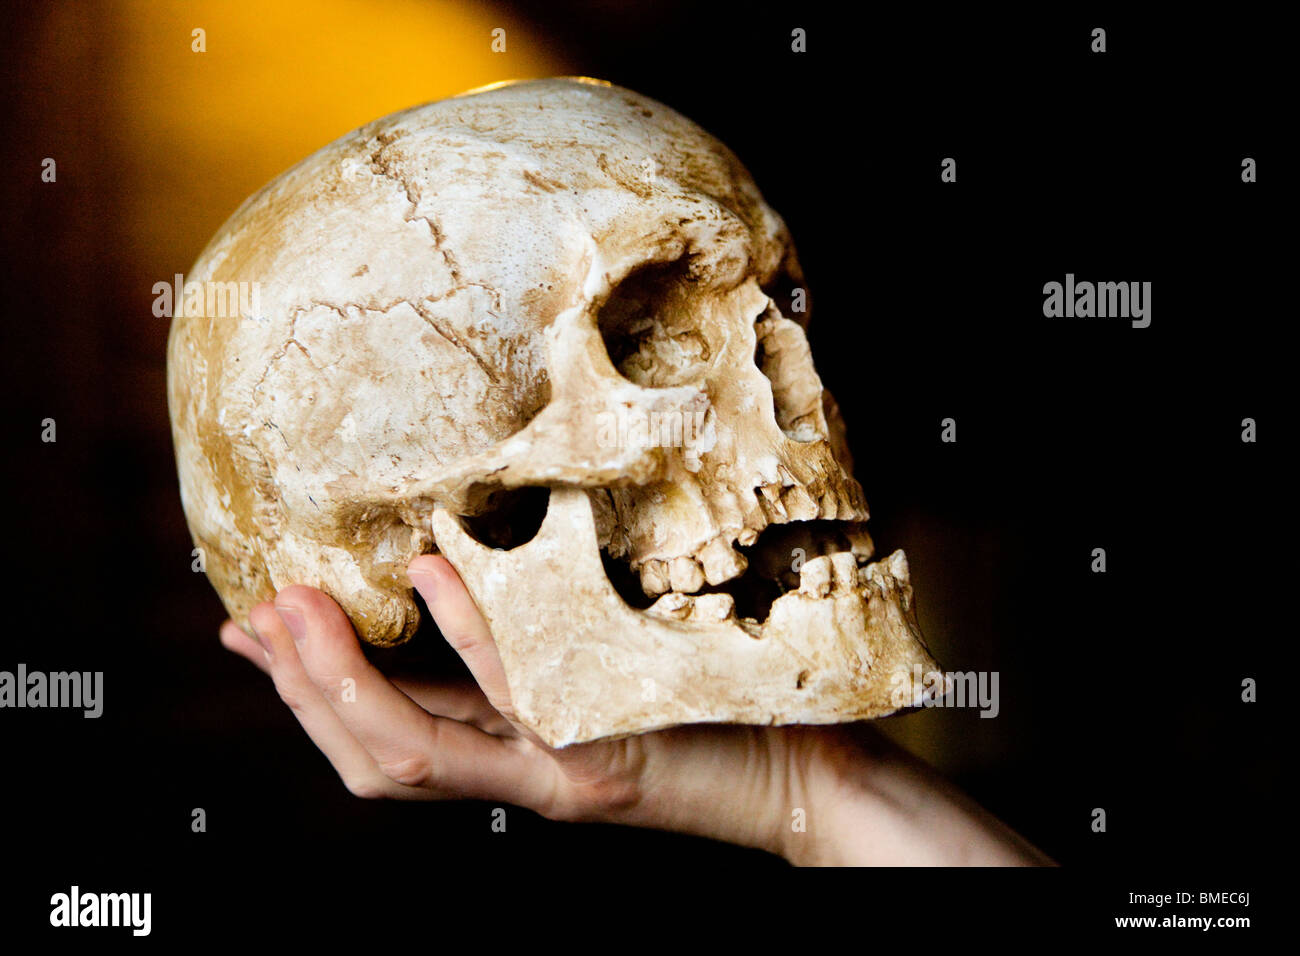 Person holding human skull - Stock Image